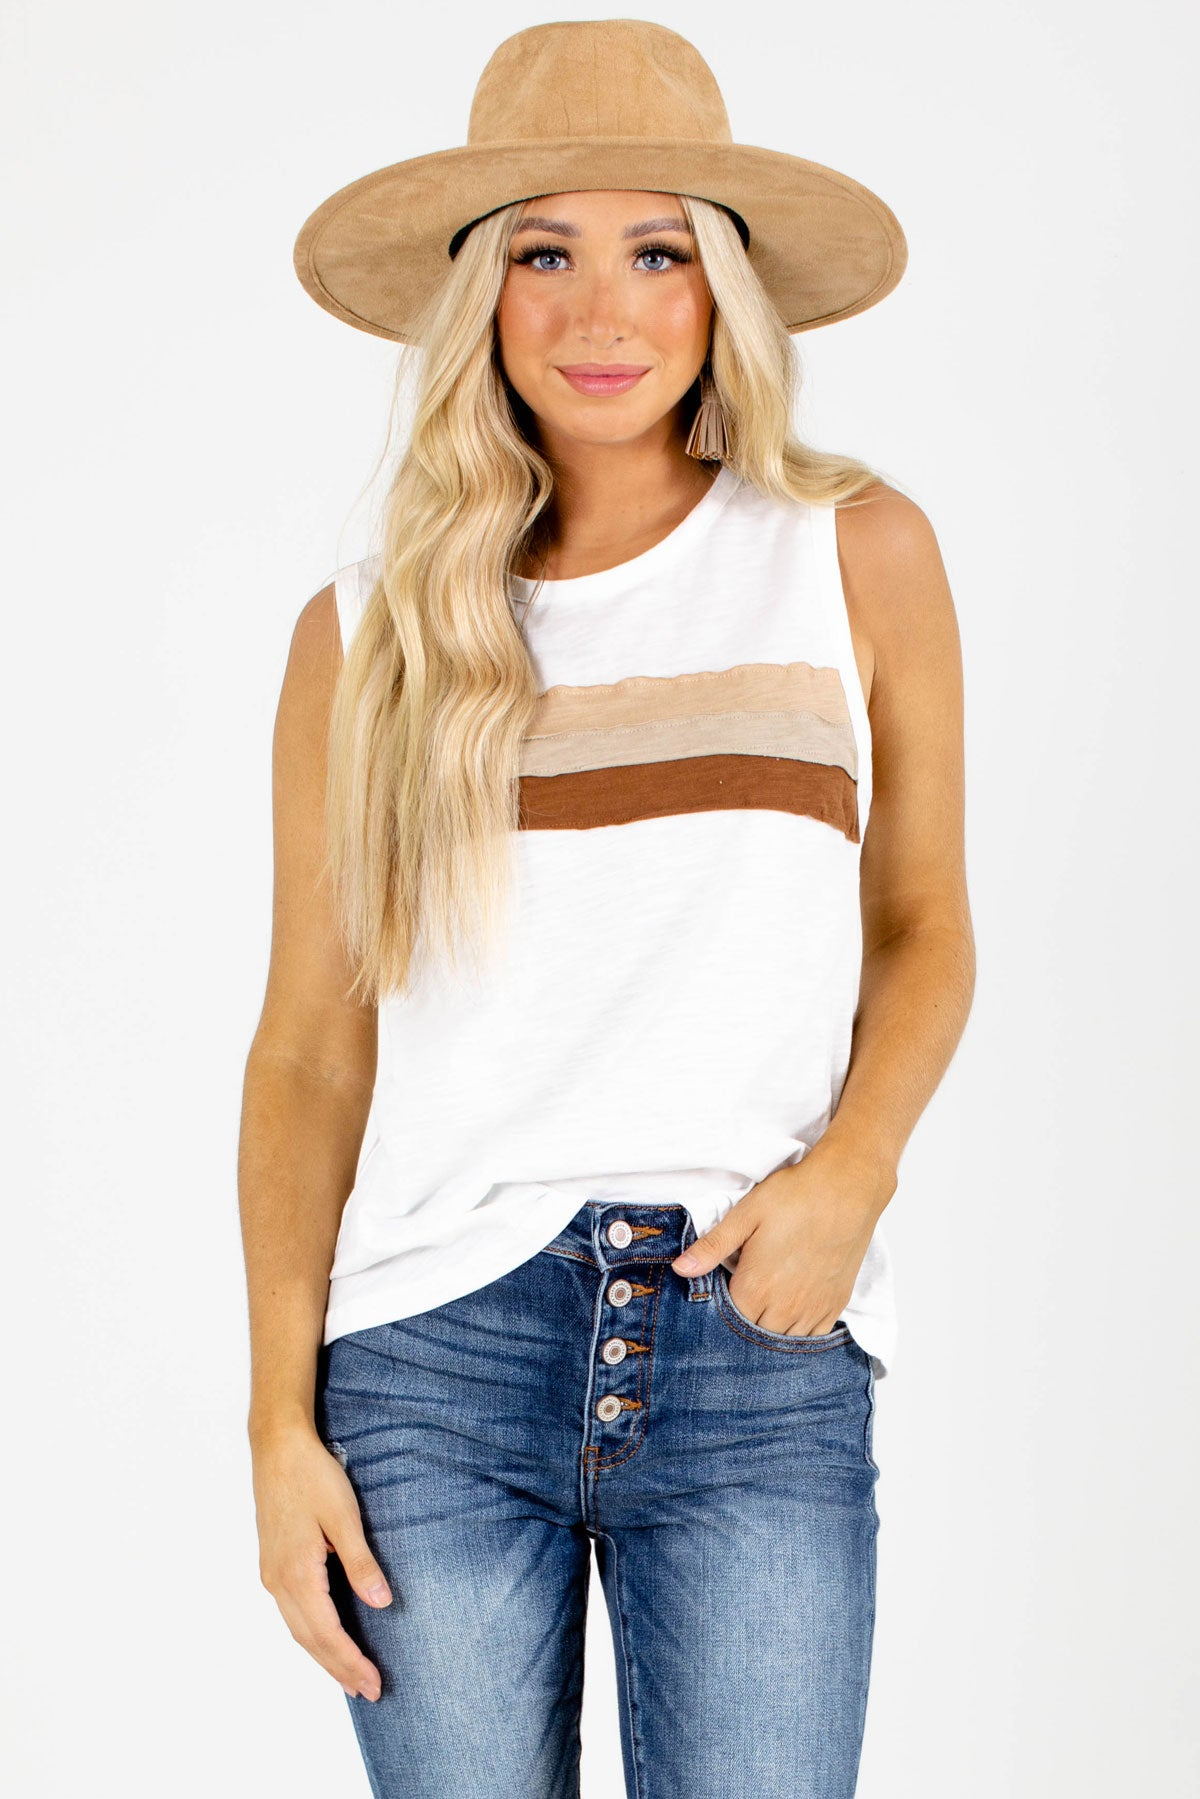 White and Brown Striped Boutique Tank Tops for Women